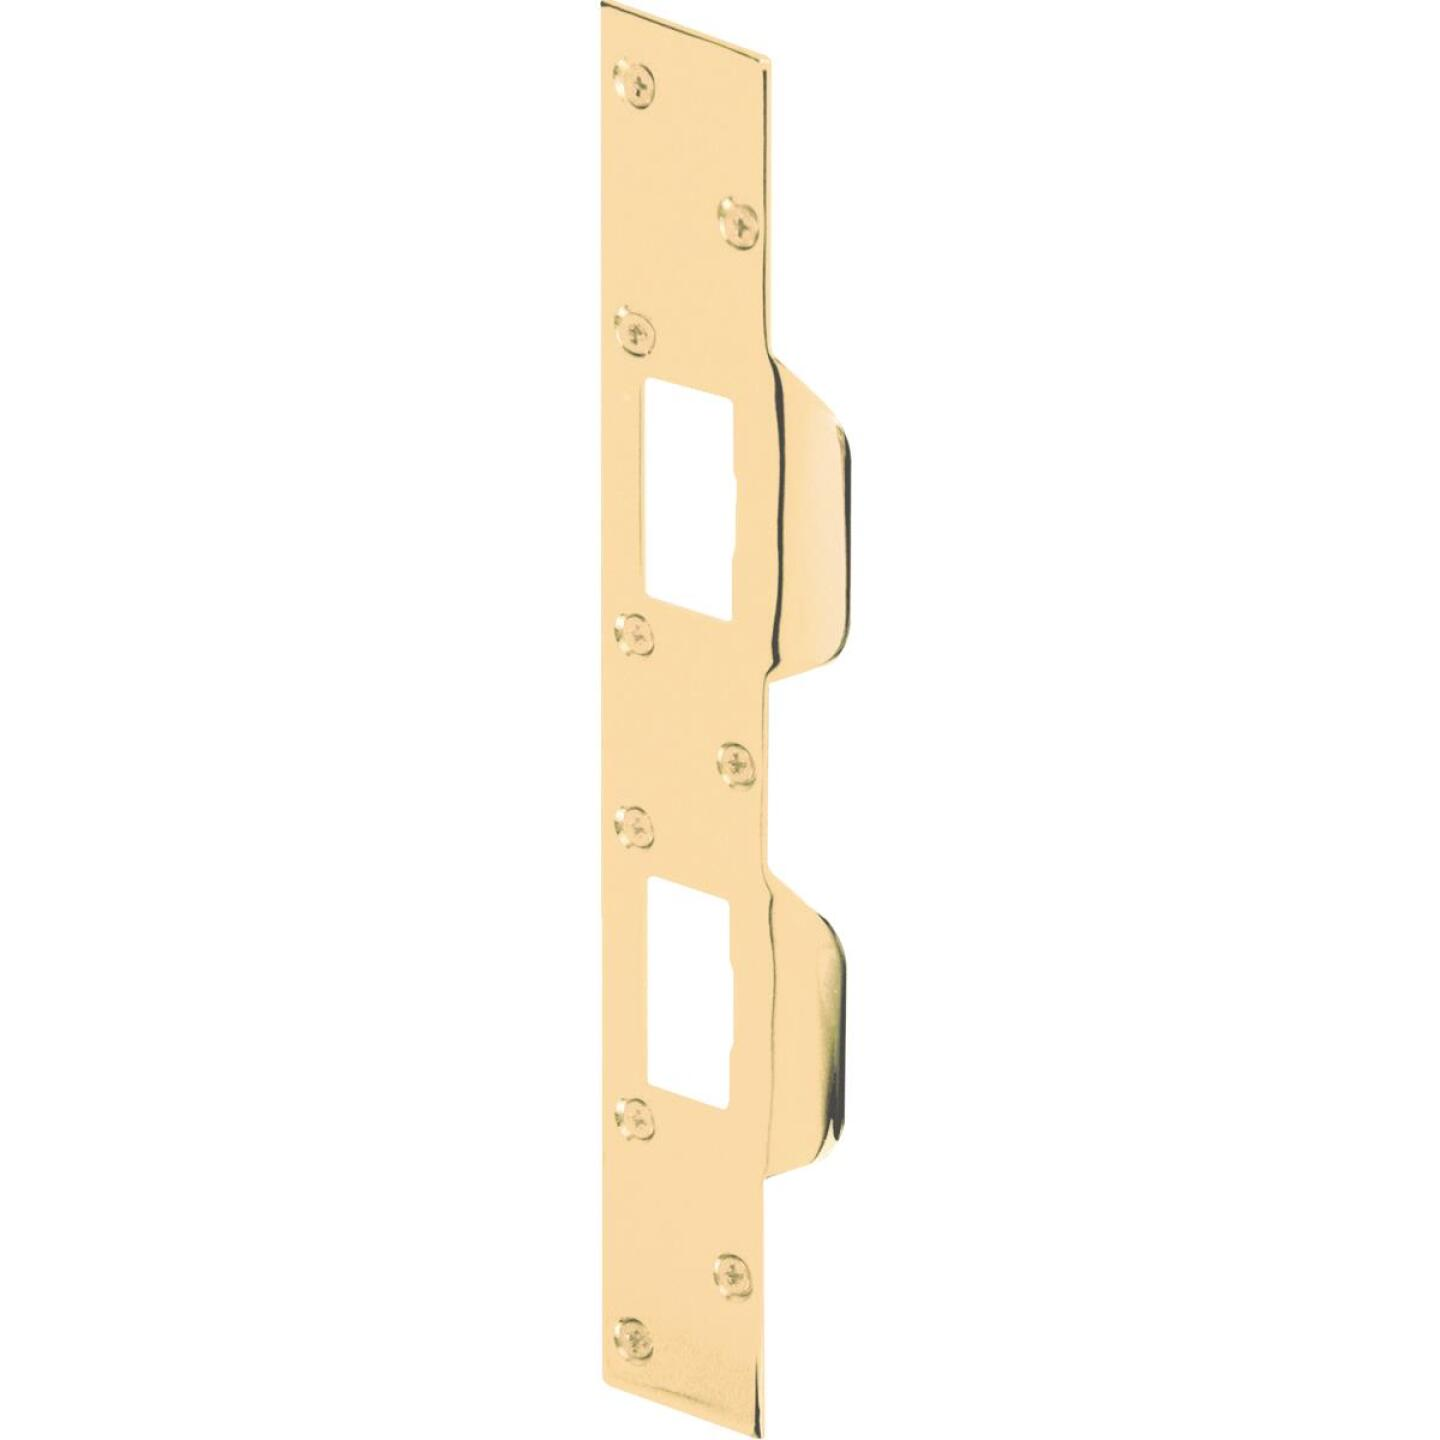 Defender Security Polished Brass 1-5/8 In. Heavy-Gauge High Security Strike Plate Image 2